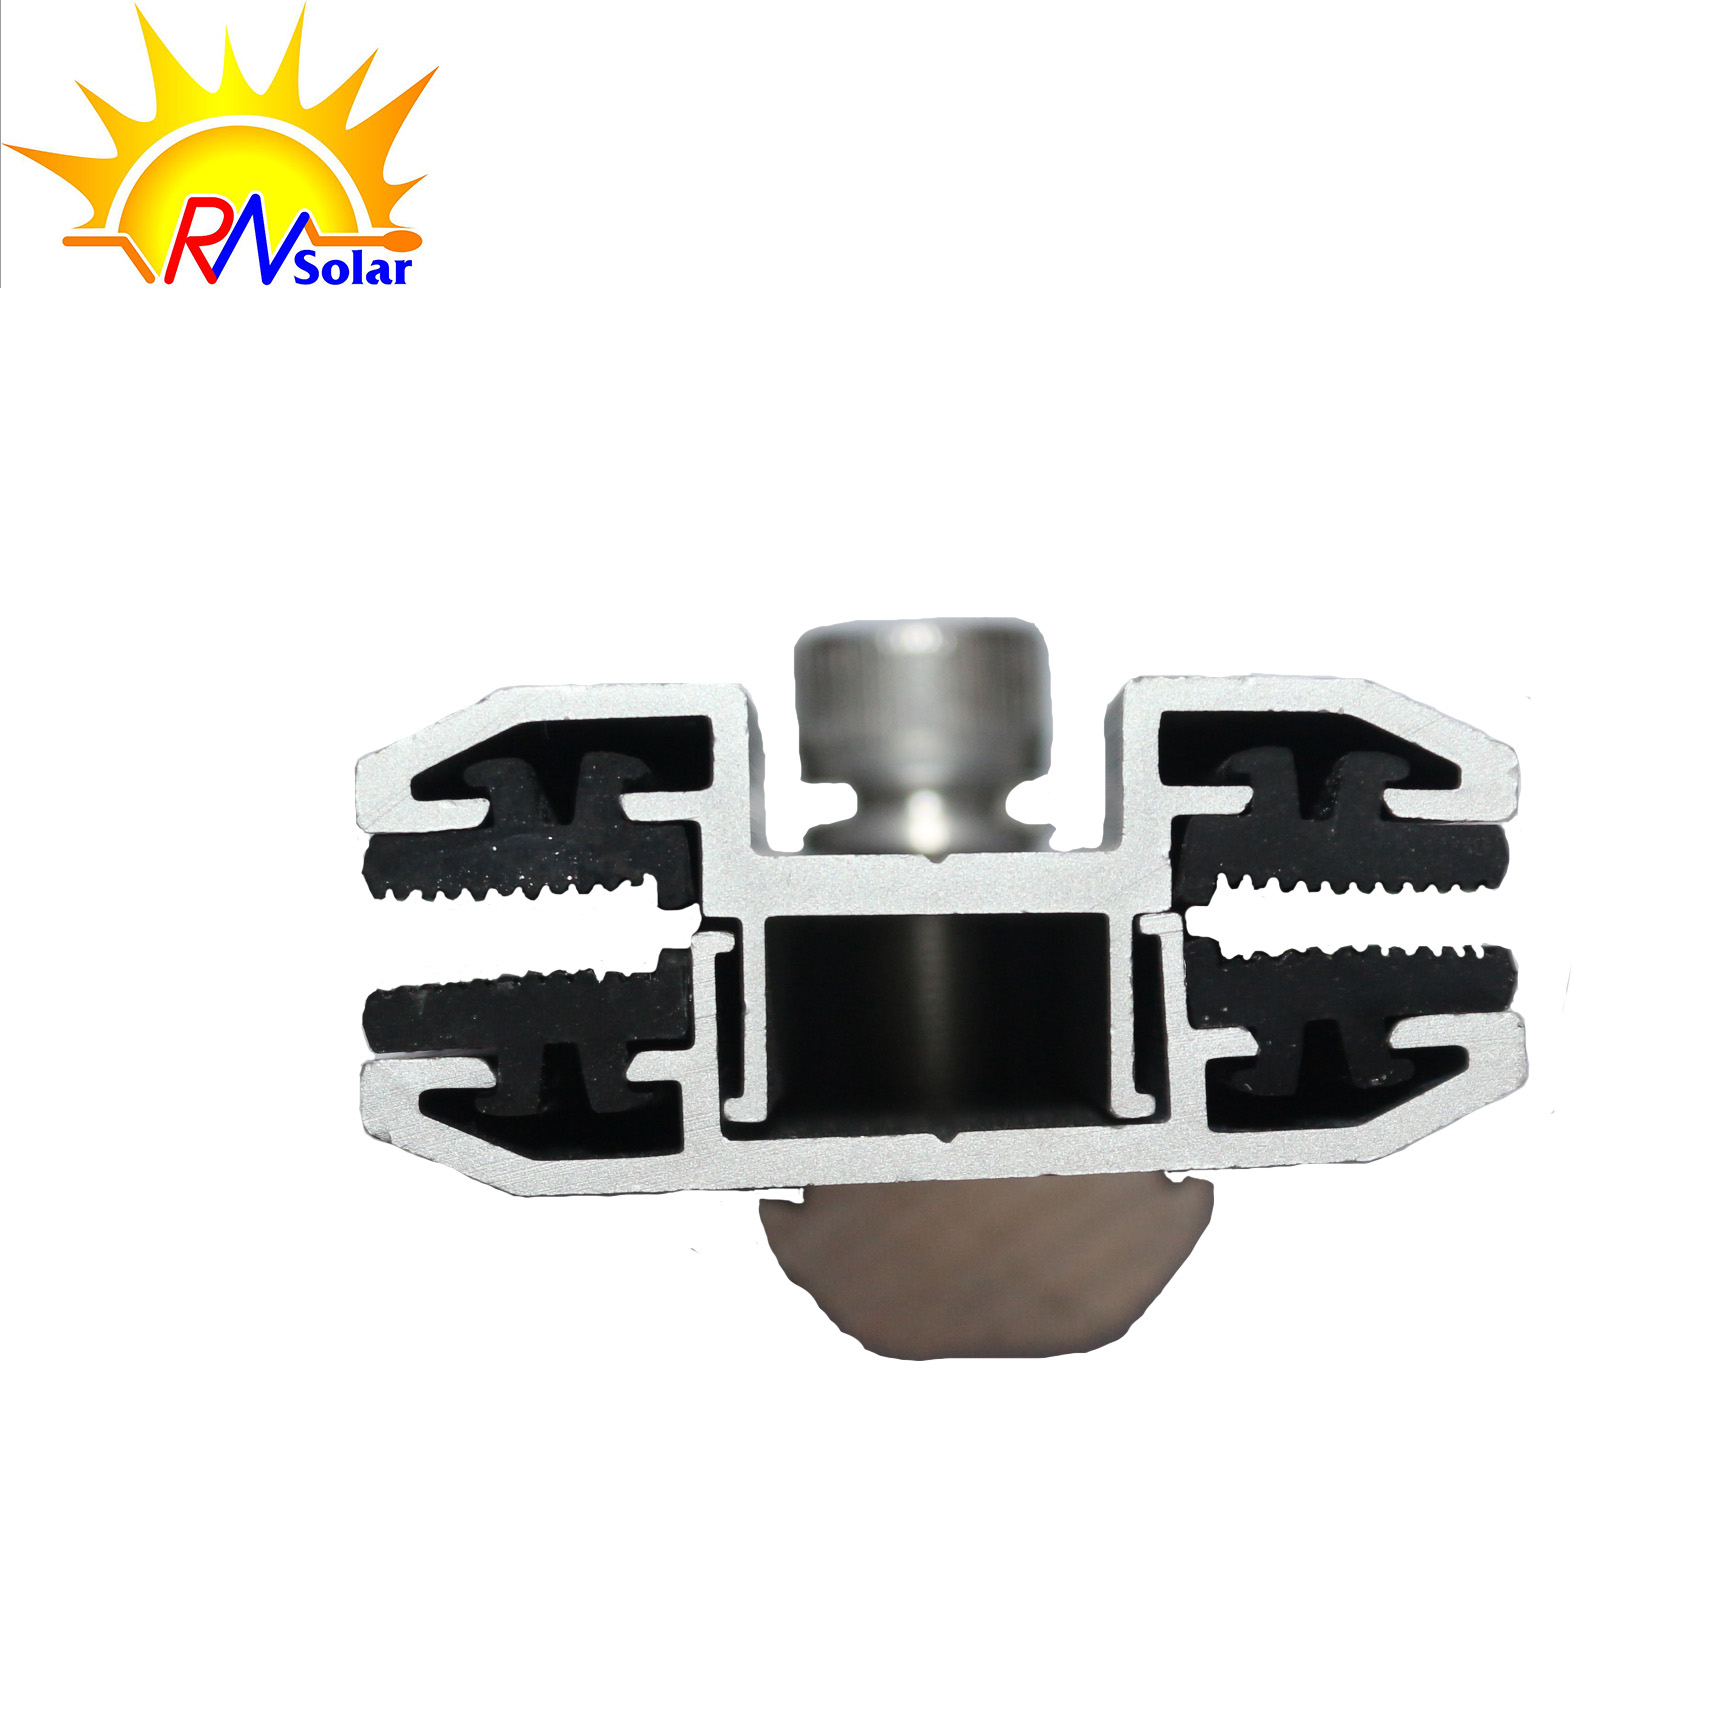 Anodized Aluminium Mid and End Frameless Solar Panel Mounting Clamps